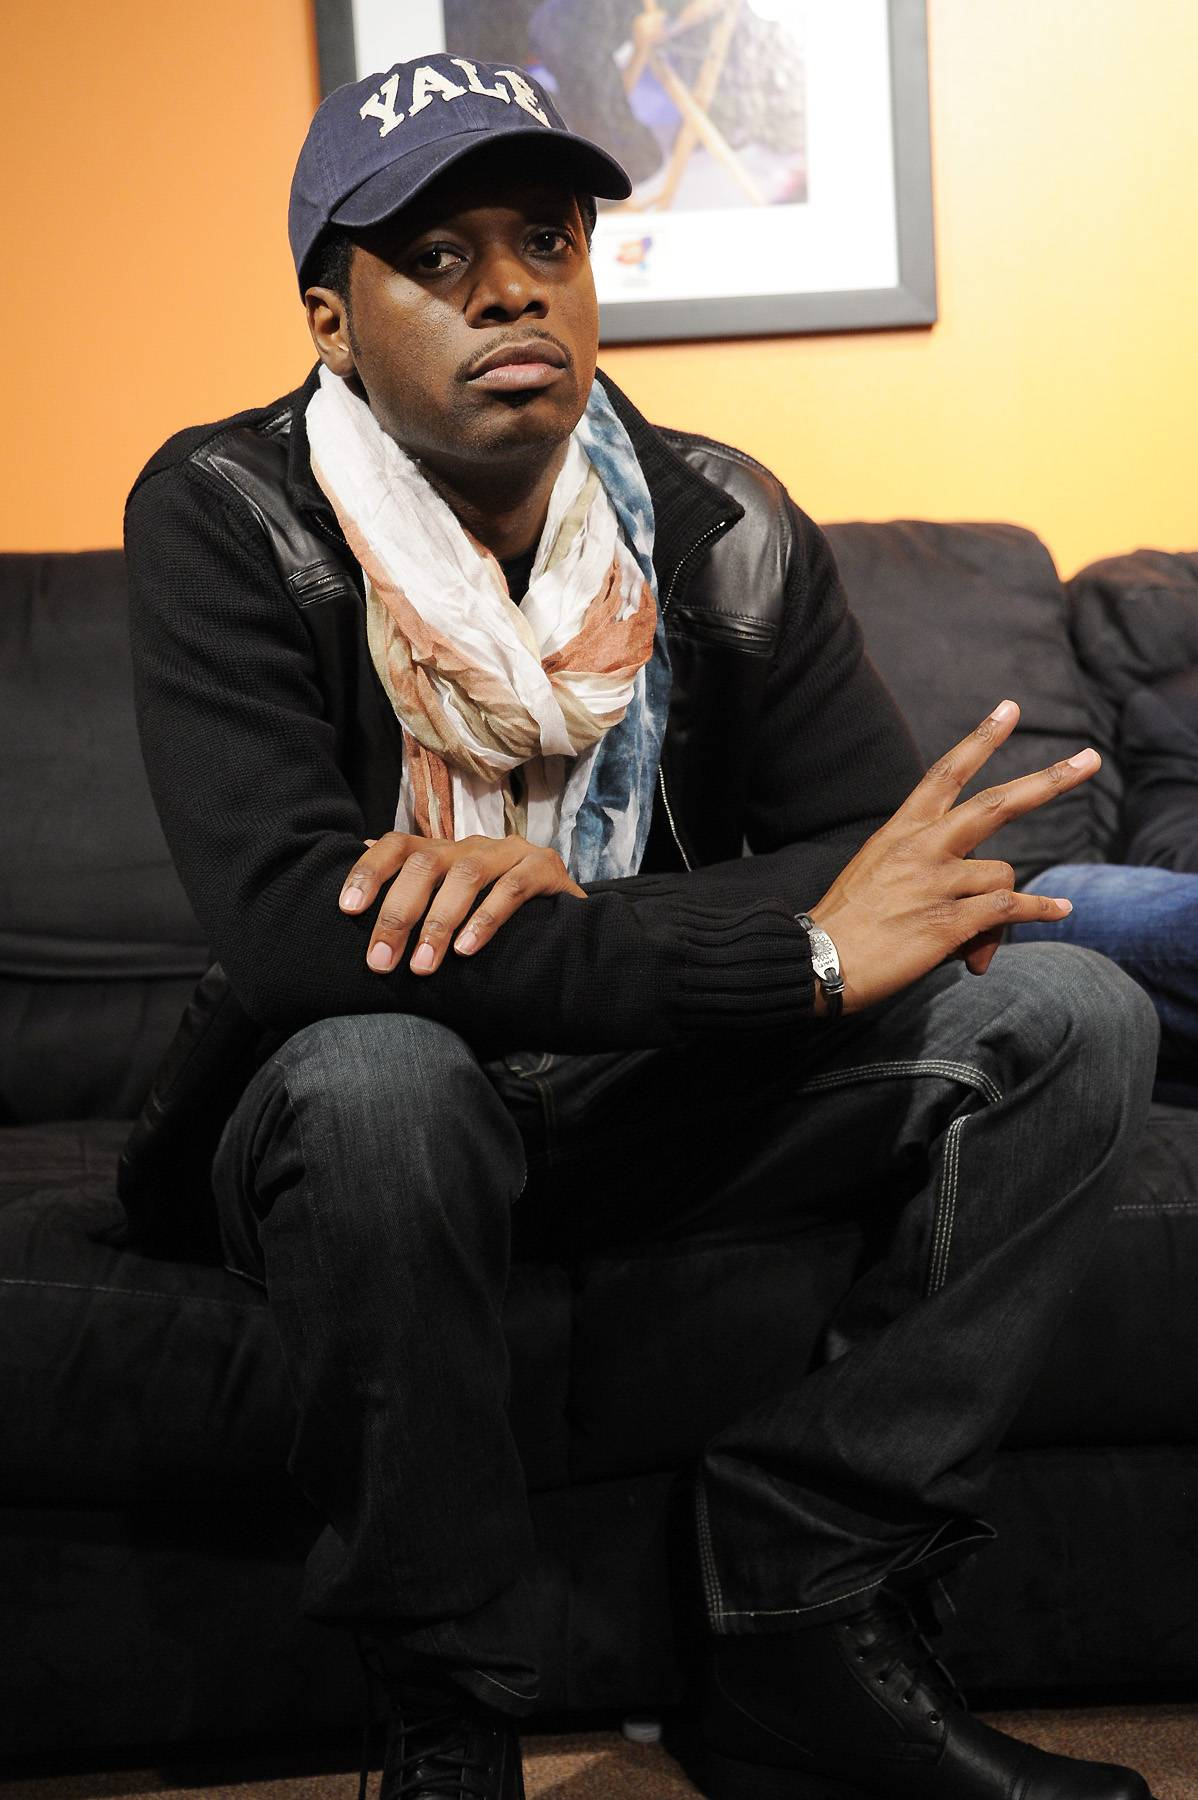 Pras: October 19 - The rapper, who turns 41, shares his birthday week with former Fugees bandmate Wyclef Jean. (photo: John Ricard / BET)